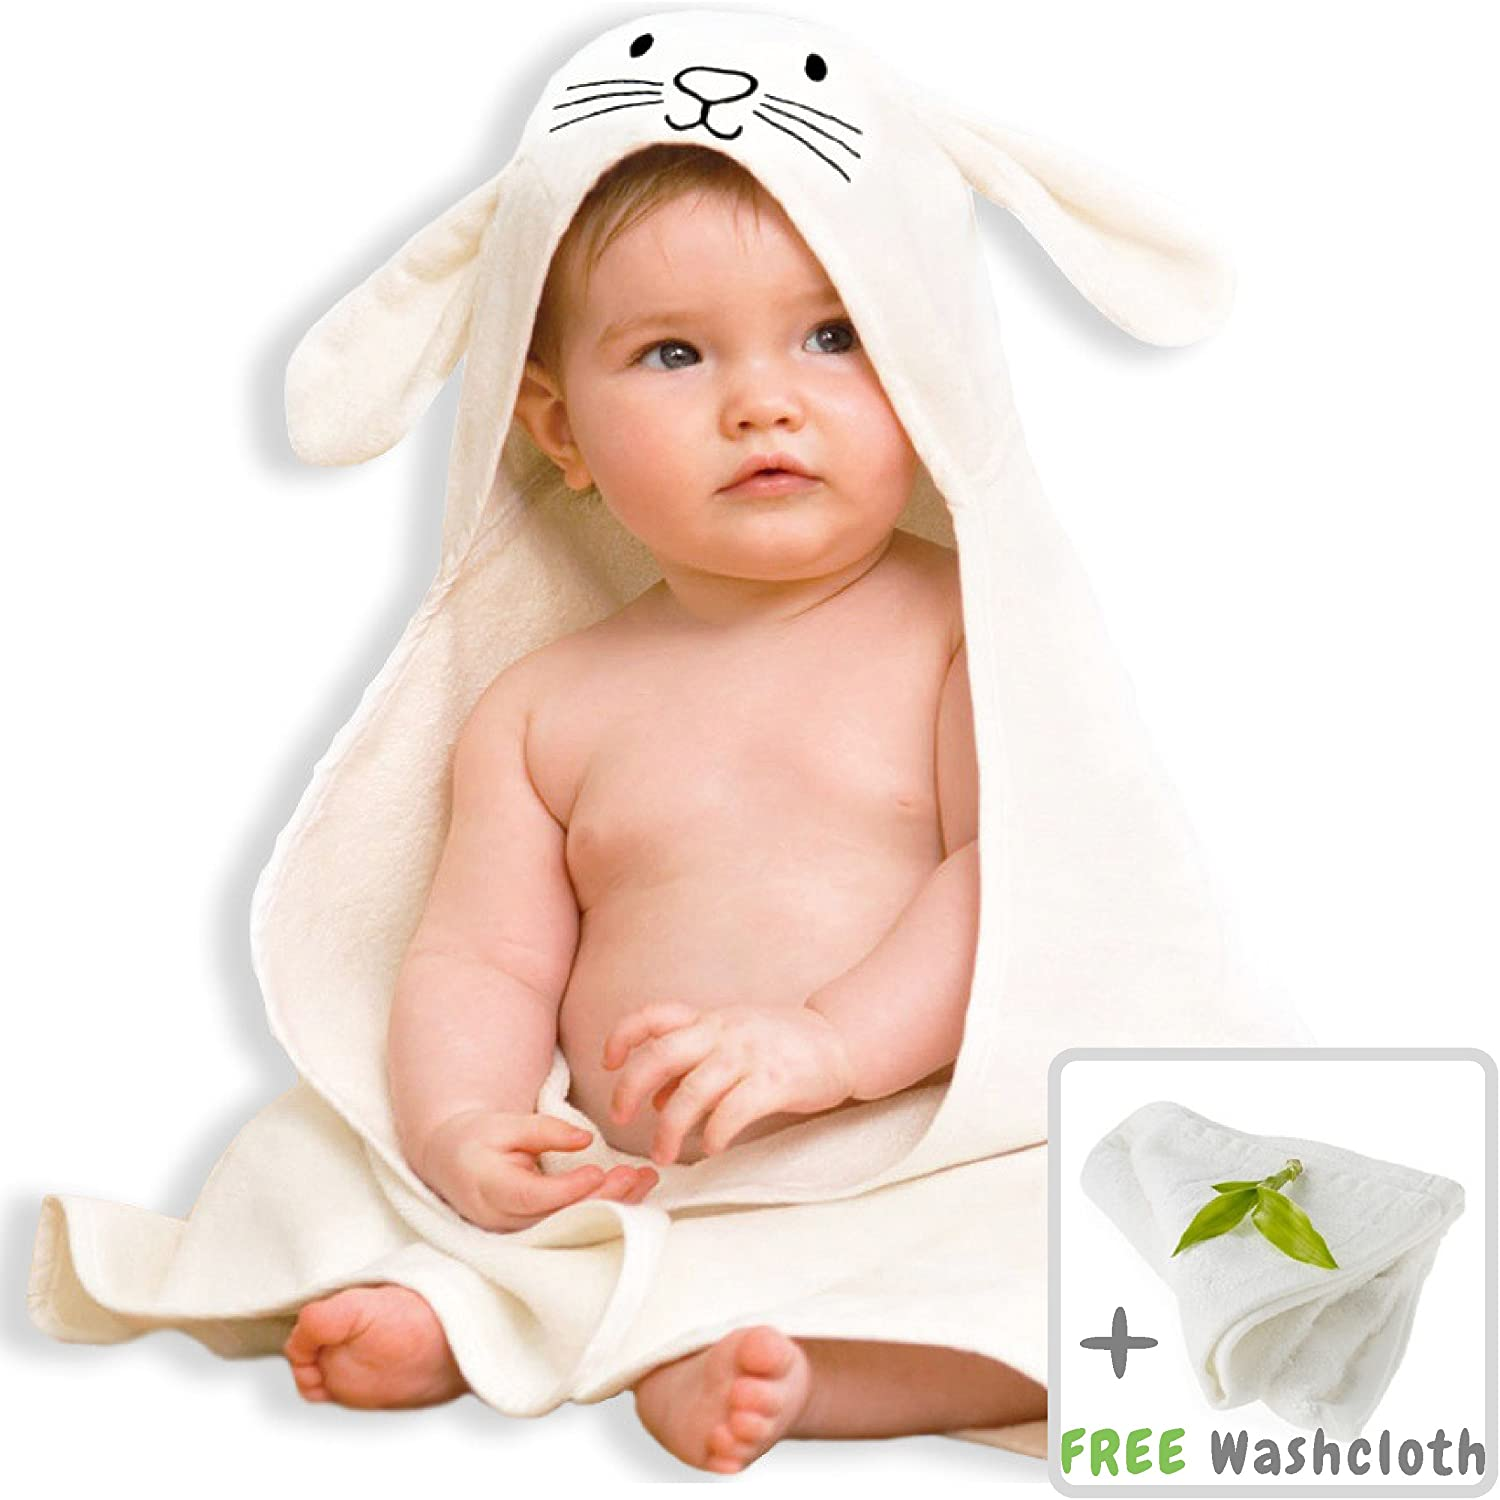 Organic Bamboo Baby Hooded Towel with Bonus Washcloth | Ultra Soft and Super Absorbent Toddler Hooded Bath Towel with Cute Lamb Face Design | Great Infant/Newborn Shower Present for Boy or Girl Lucylla